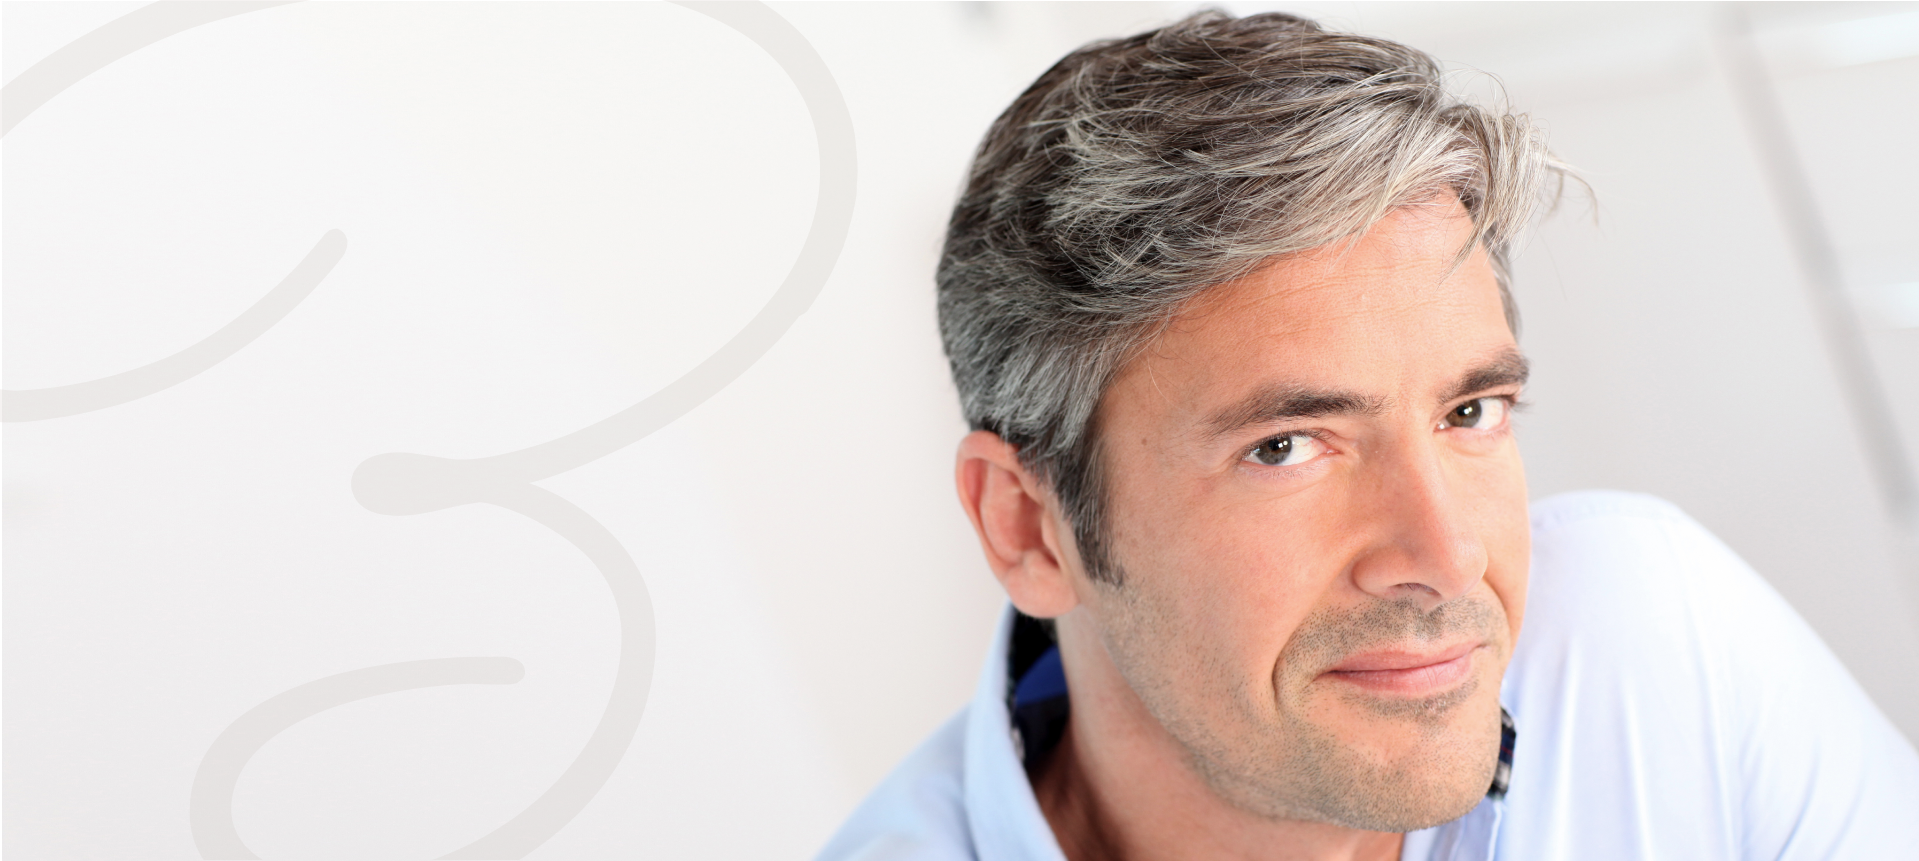 Male hair loss patient confident with the results of hair restoration therapy